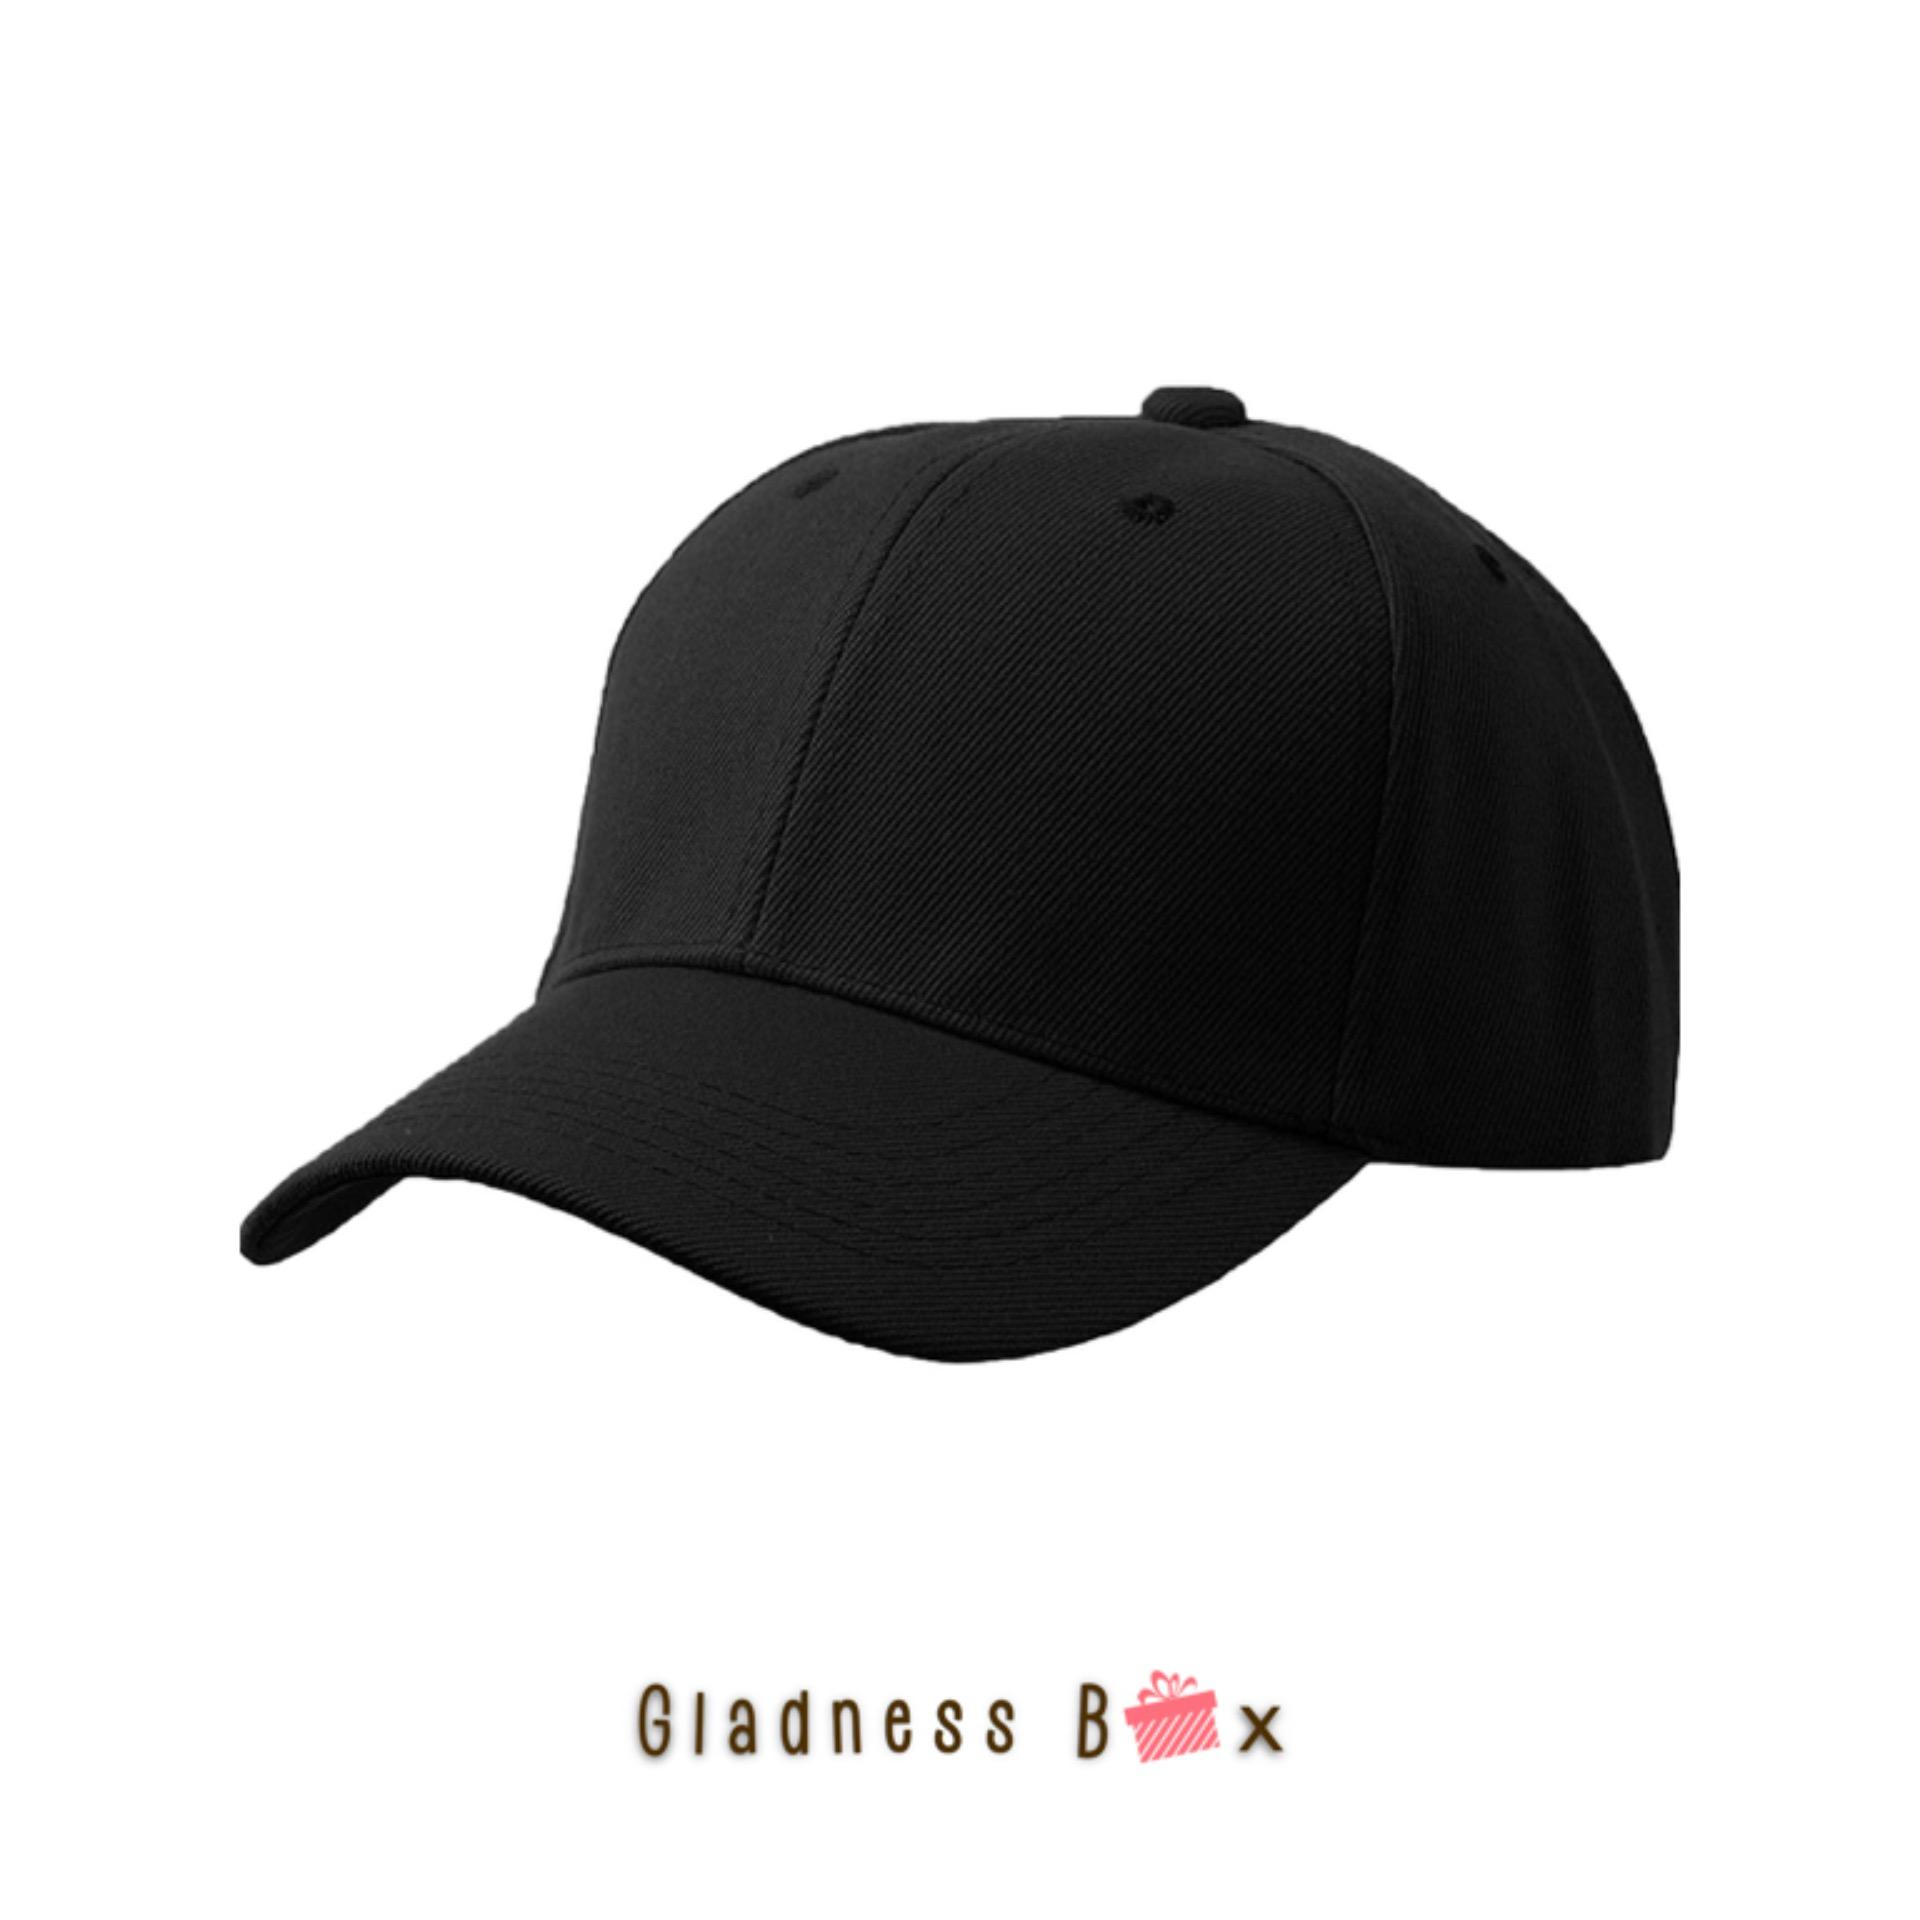 932efb5c48b Gladness Box High Quality Plain Baseball Cap for Men Women Unisex